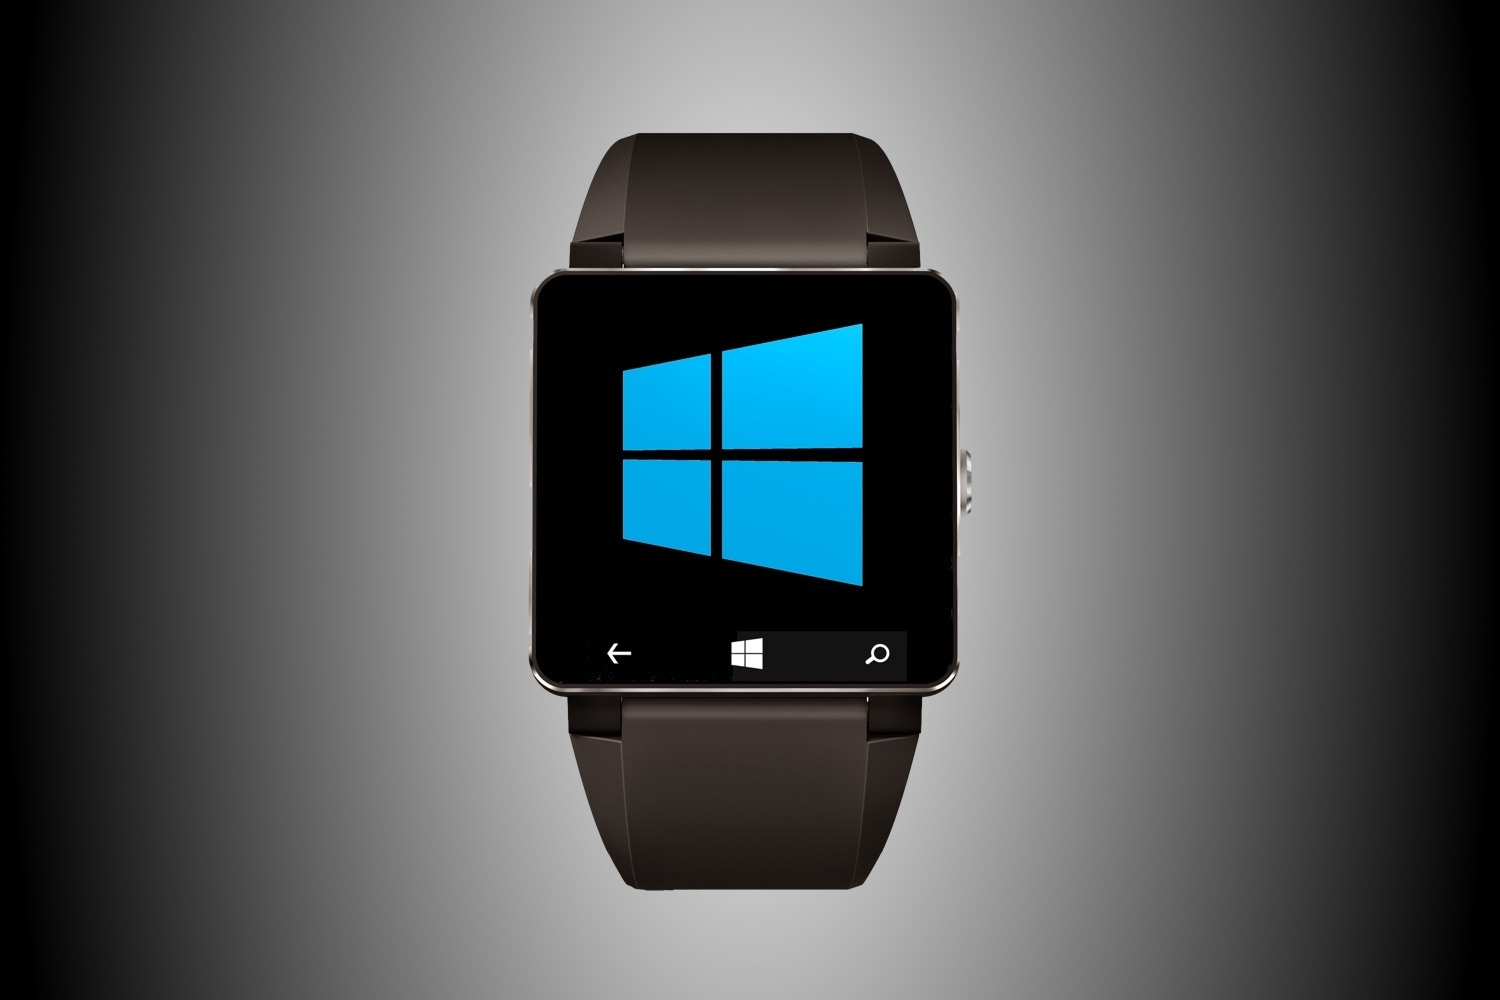 Windows Smartwatch